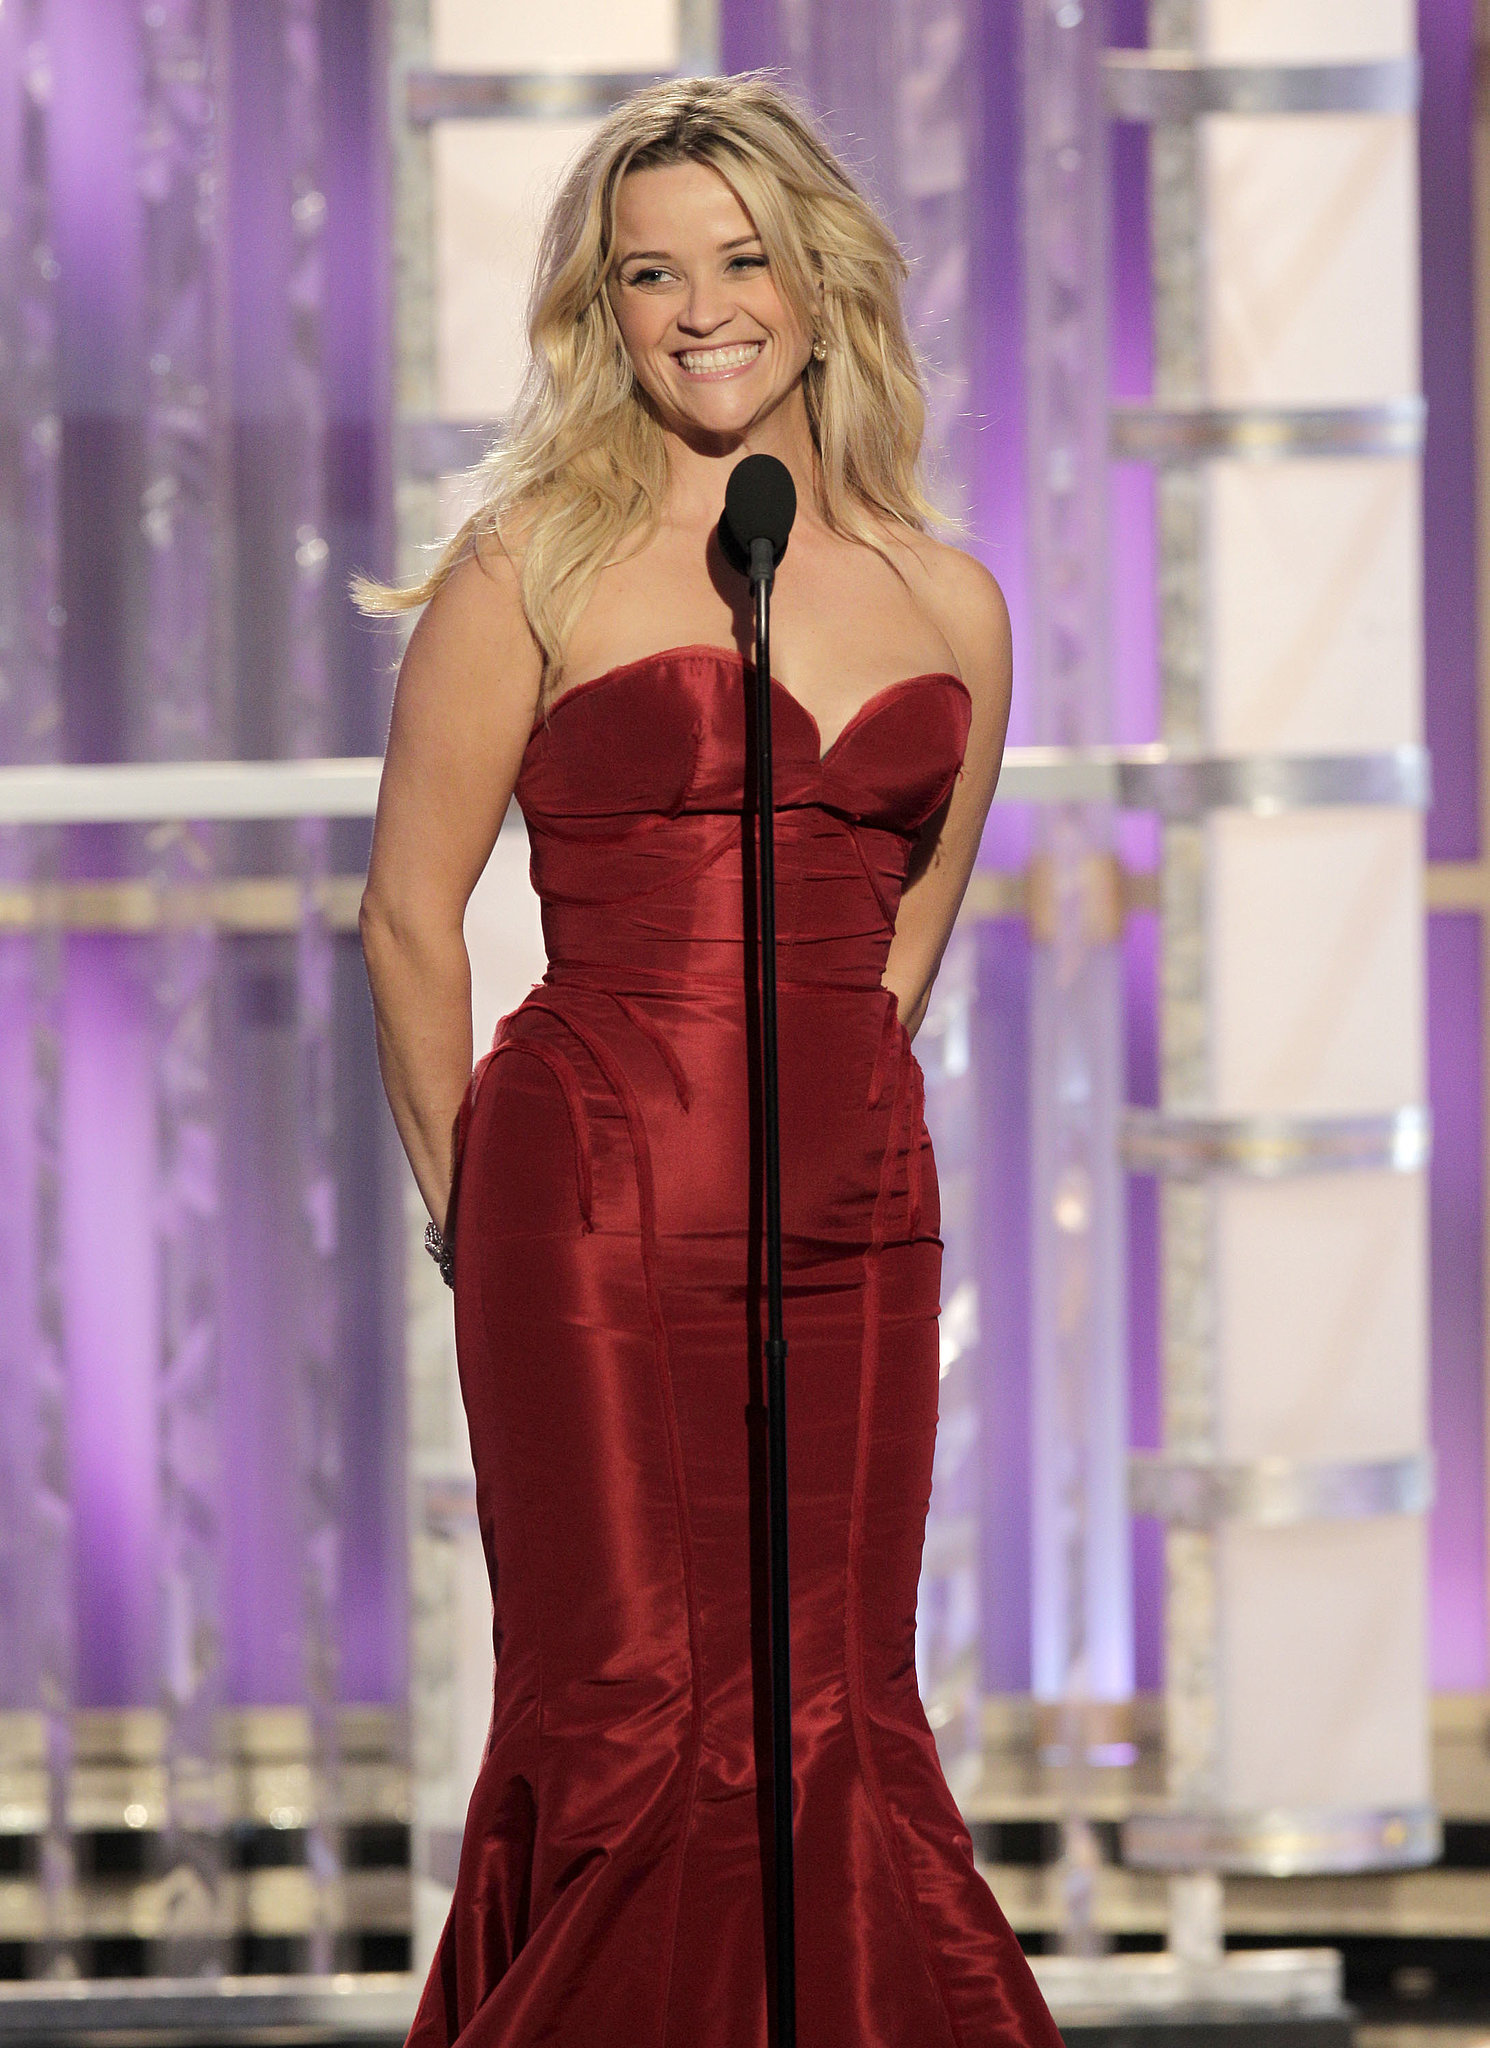 She was a vision in red while presenting an award at the Golden Globes in January 2012 in LA.